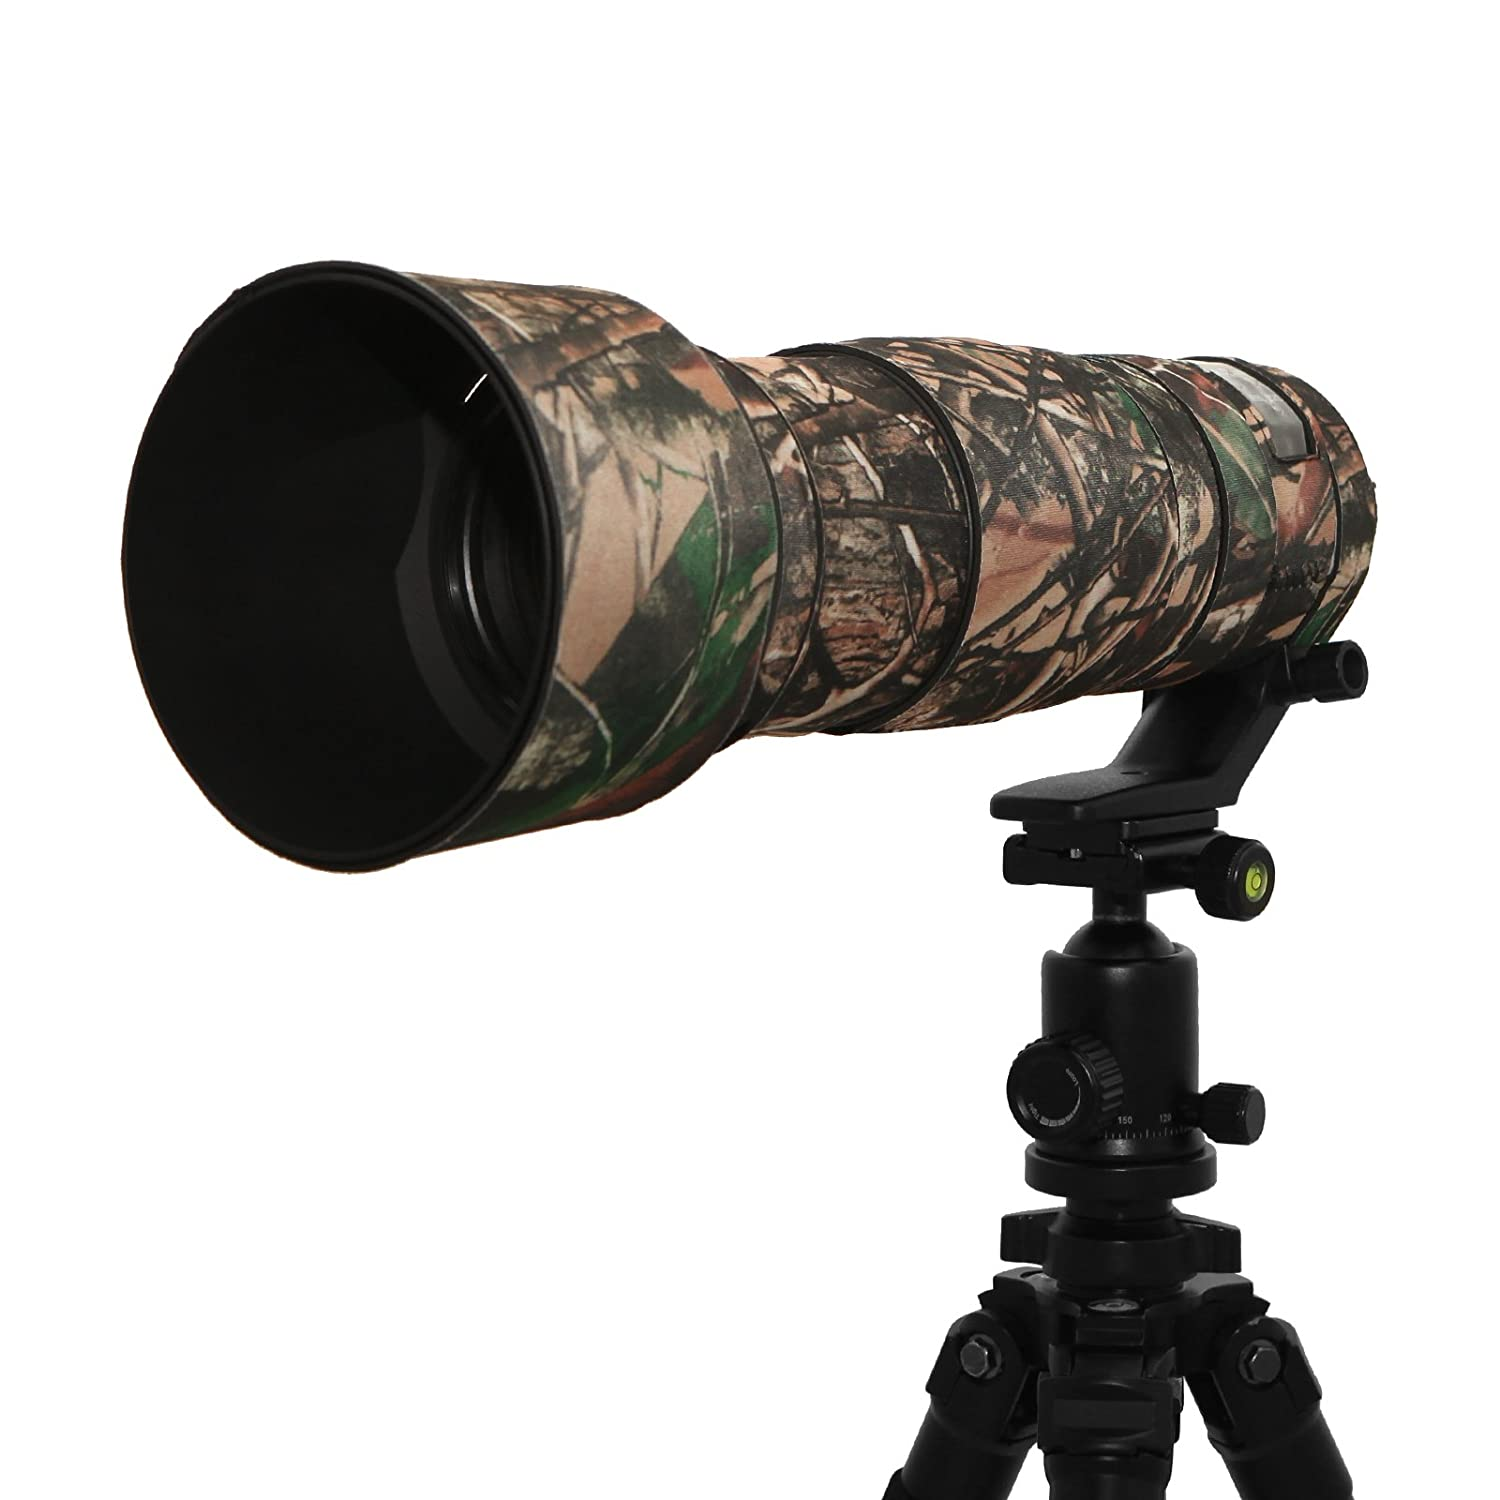 Mekingstudio 150-600mm Sports Professional Rubber Camera Lens Protective Cover Camo Waterproof for Sigma 150-600mm S For 150-600mm Sigma